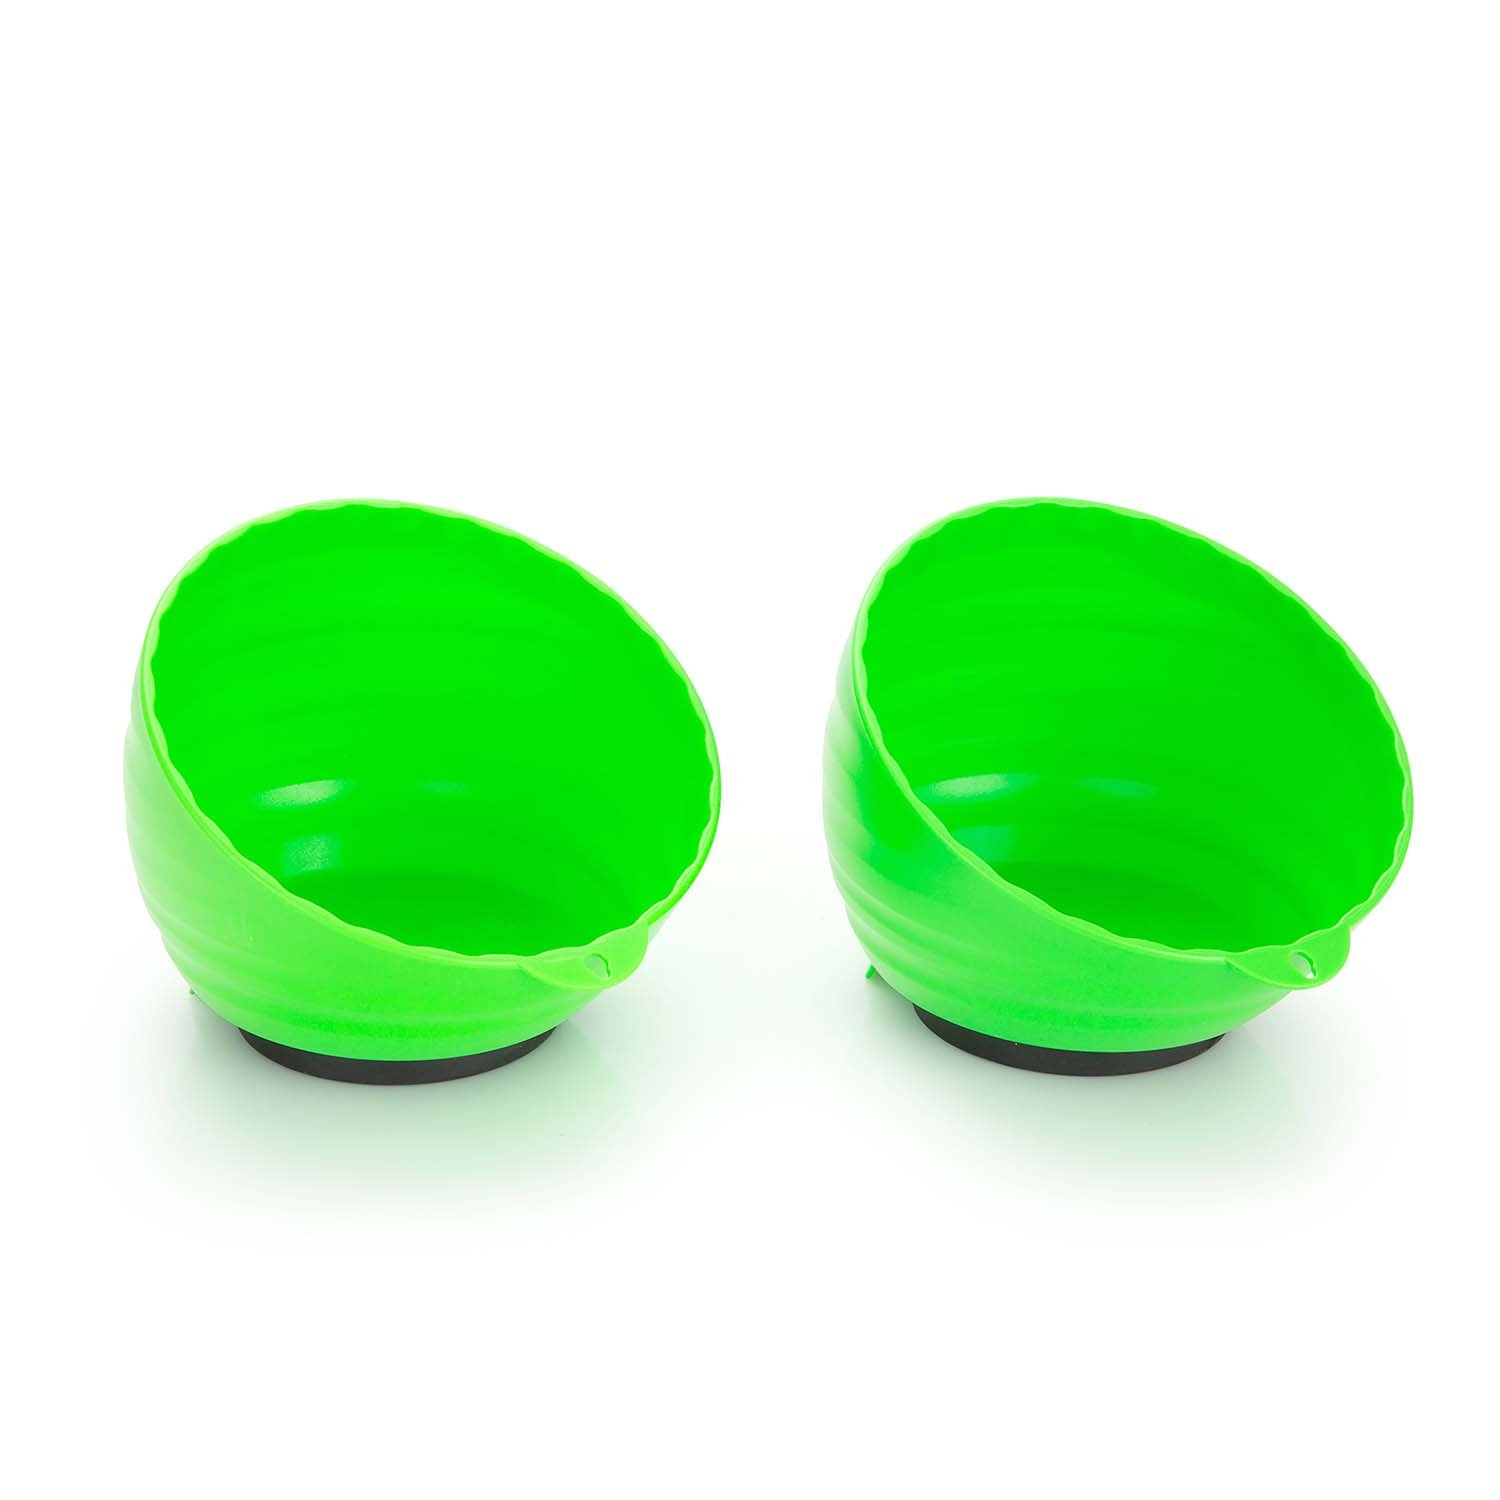 OEMTOOLS 25115 Magnetic Nut Cups, 2 Pack